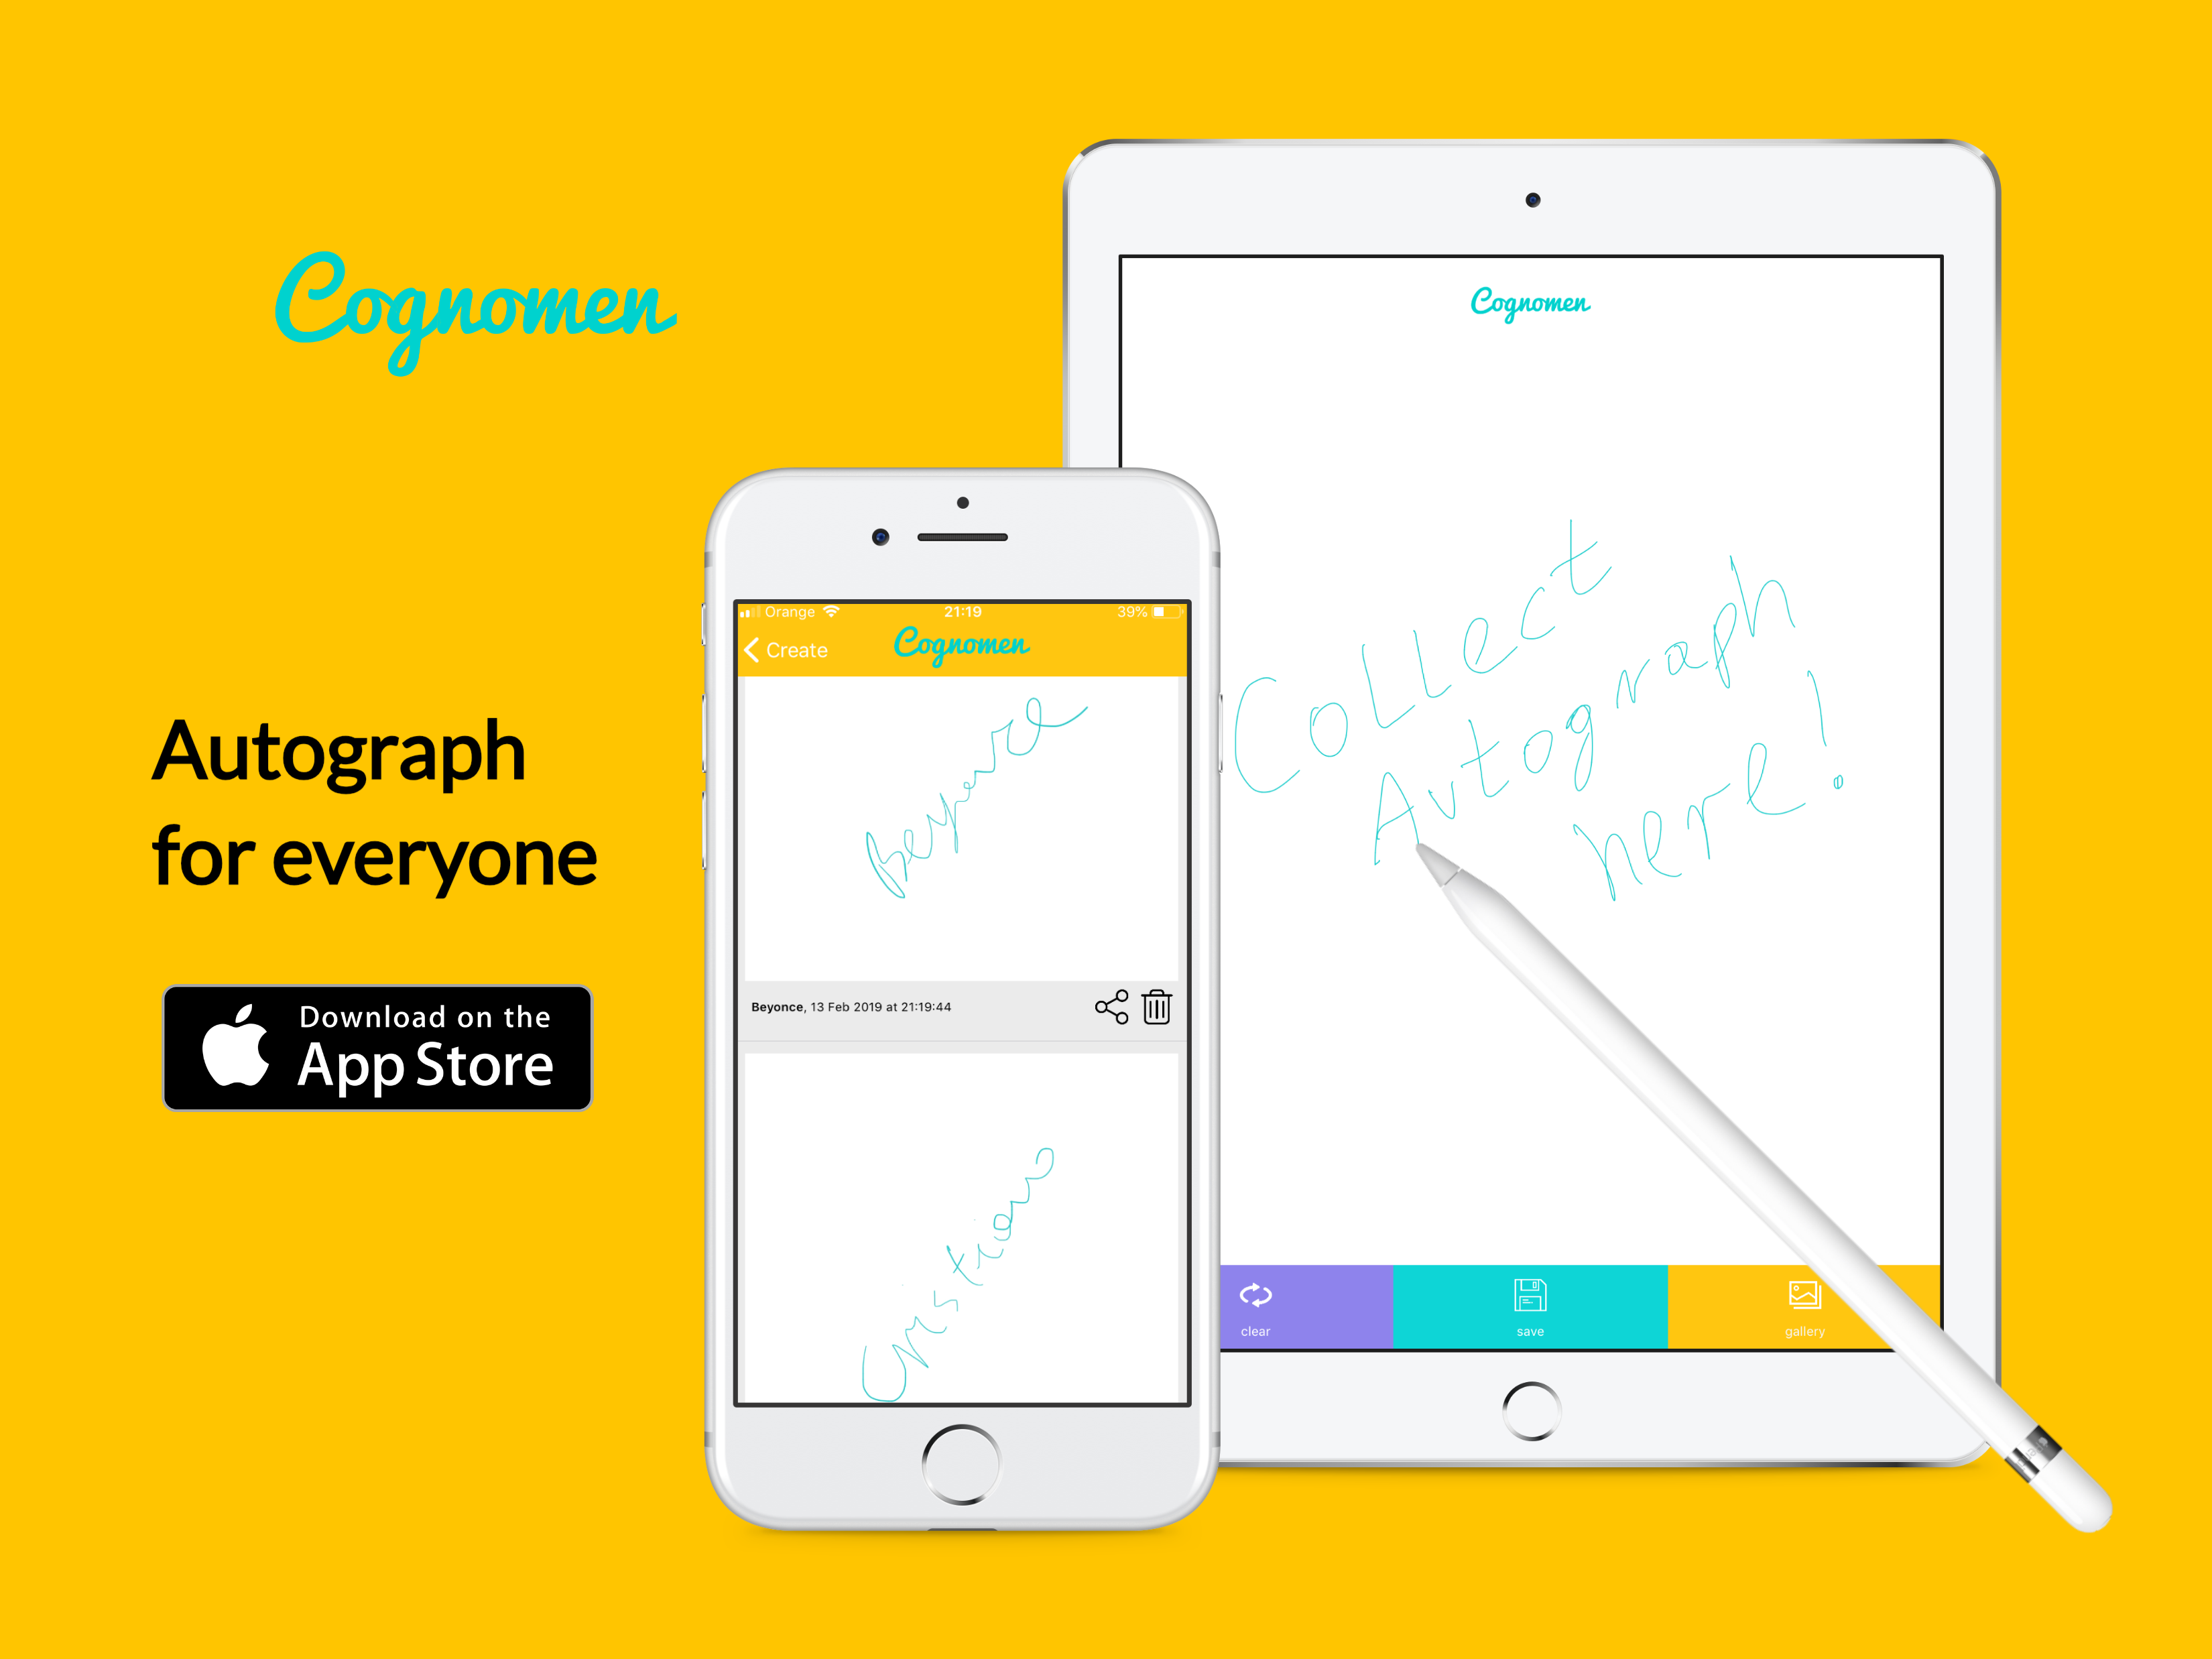 Cognomen - Collect autographs on iPhone and iPad using finger or stylus